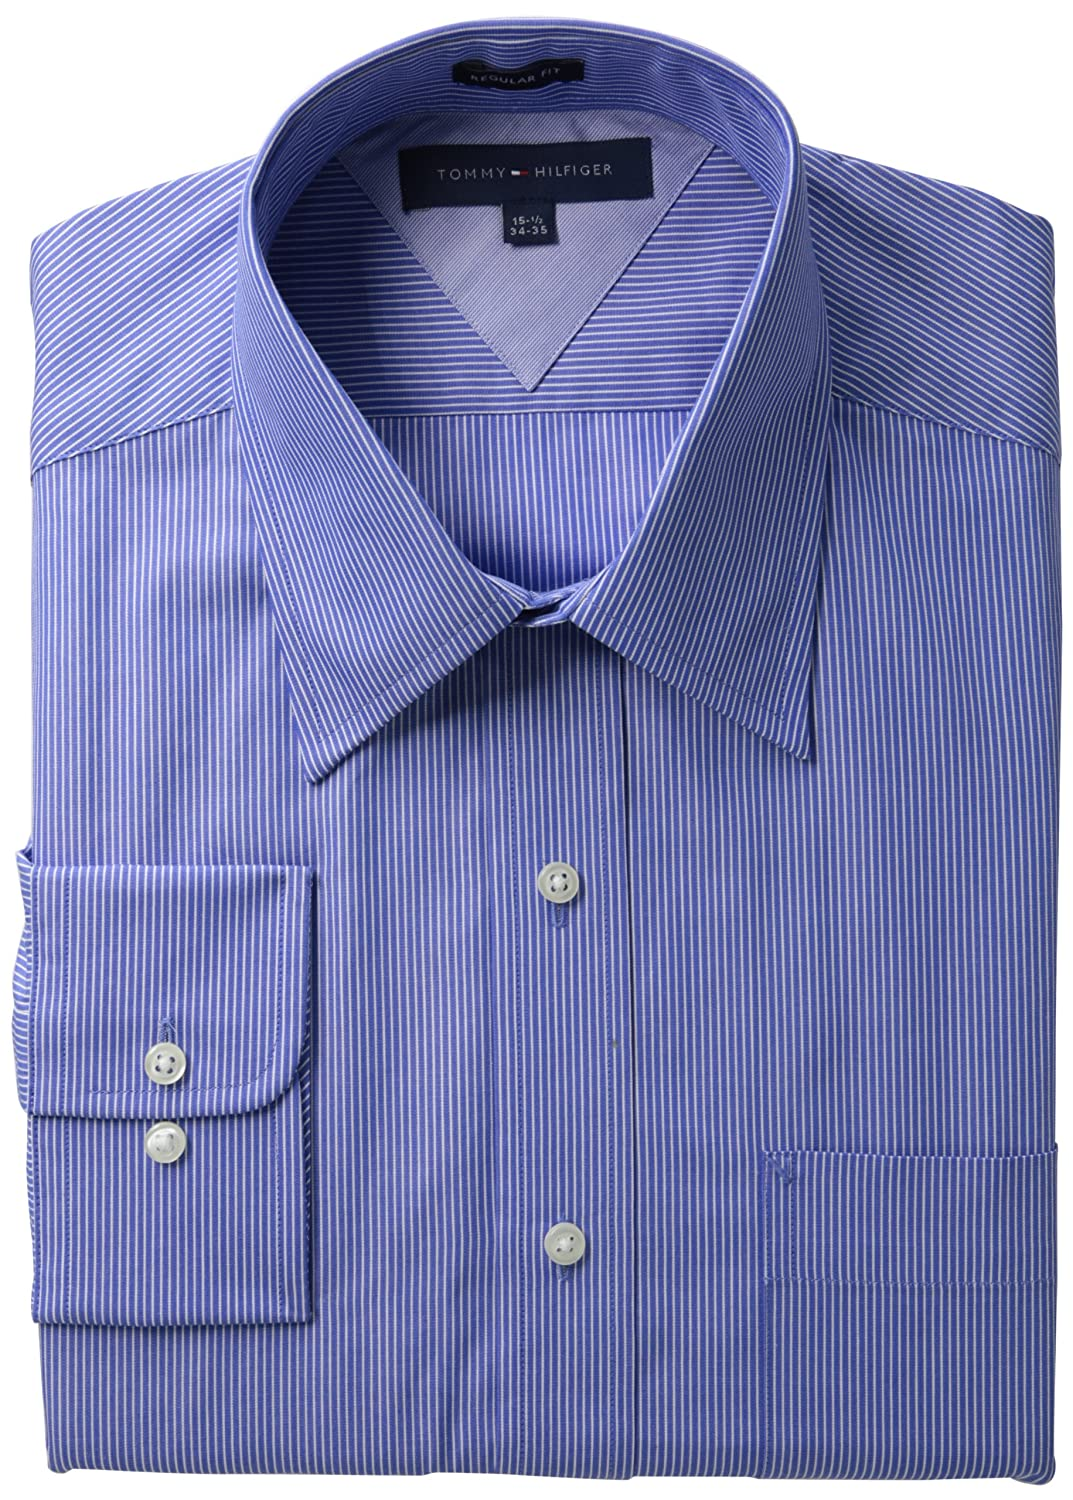 Tommy Hilfiger Mens Long Sleeve Fancy Point Collar